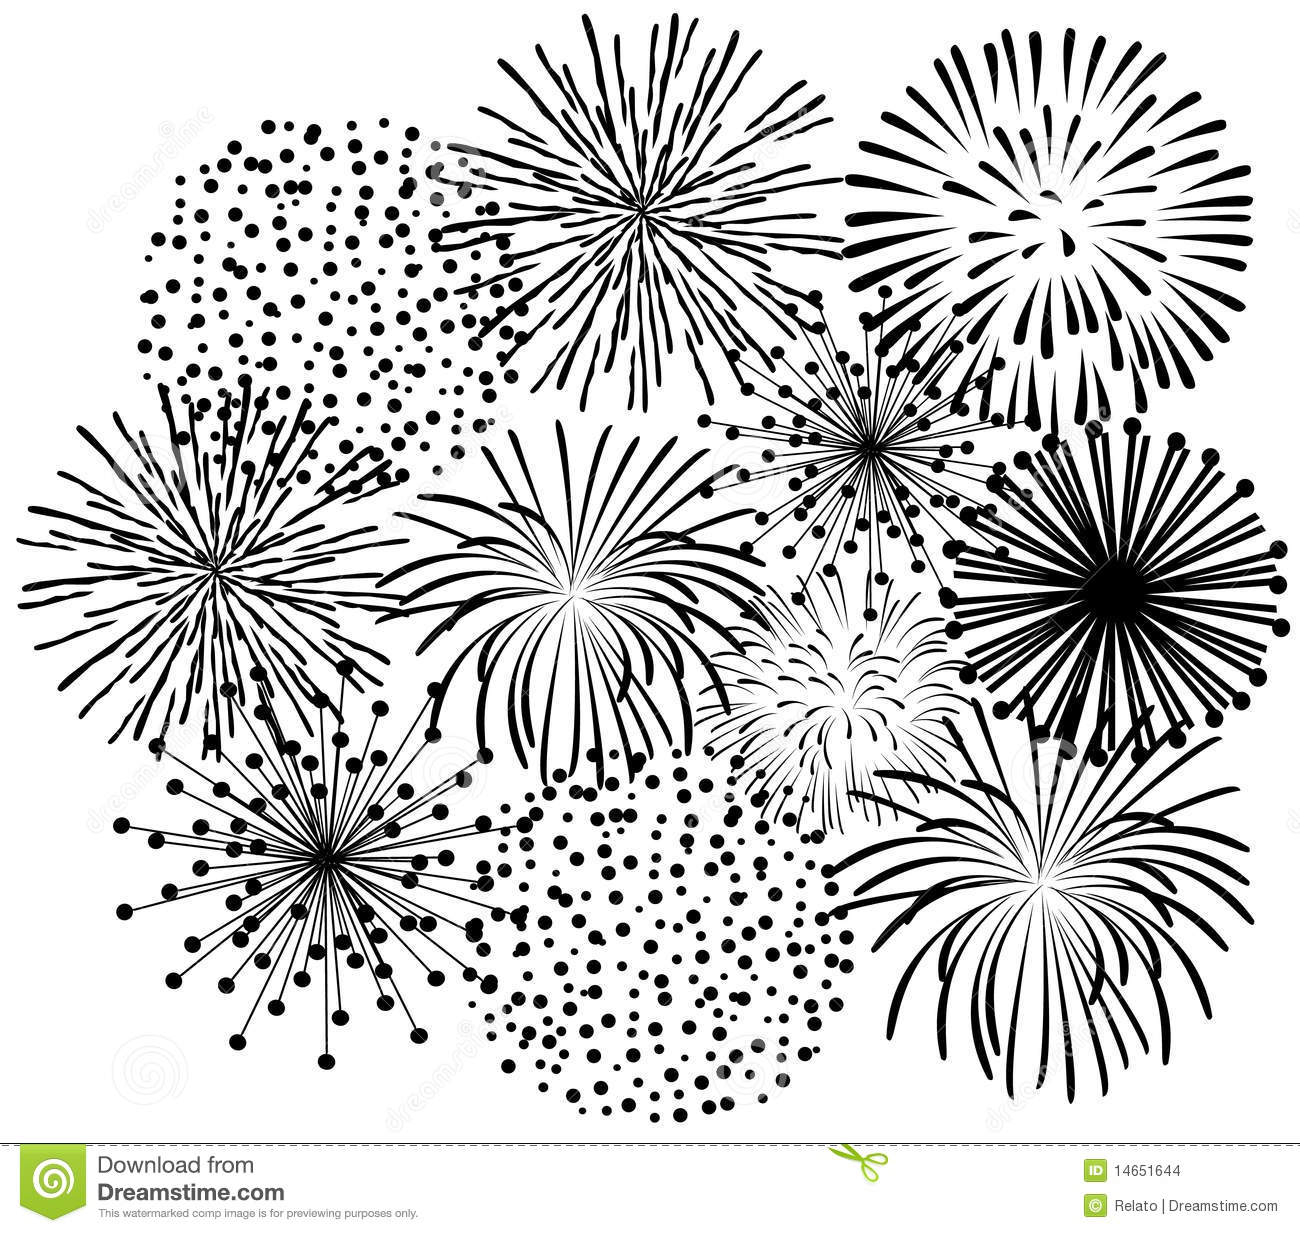 Illustration Stock Dessin En Bambou D Encre Image49911531 besides Christoph Niemann Es Gibt Nicht Gutes also File 4 Nitroaniline chemical structure further How To Draw Blossoms together with Sarahs Scribbles Interviews With Web ic Artists. on simple time drawing